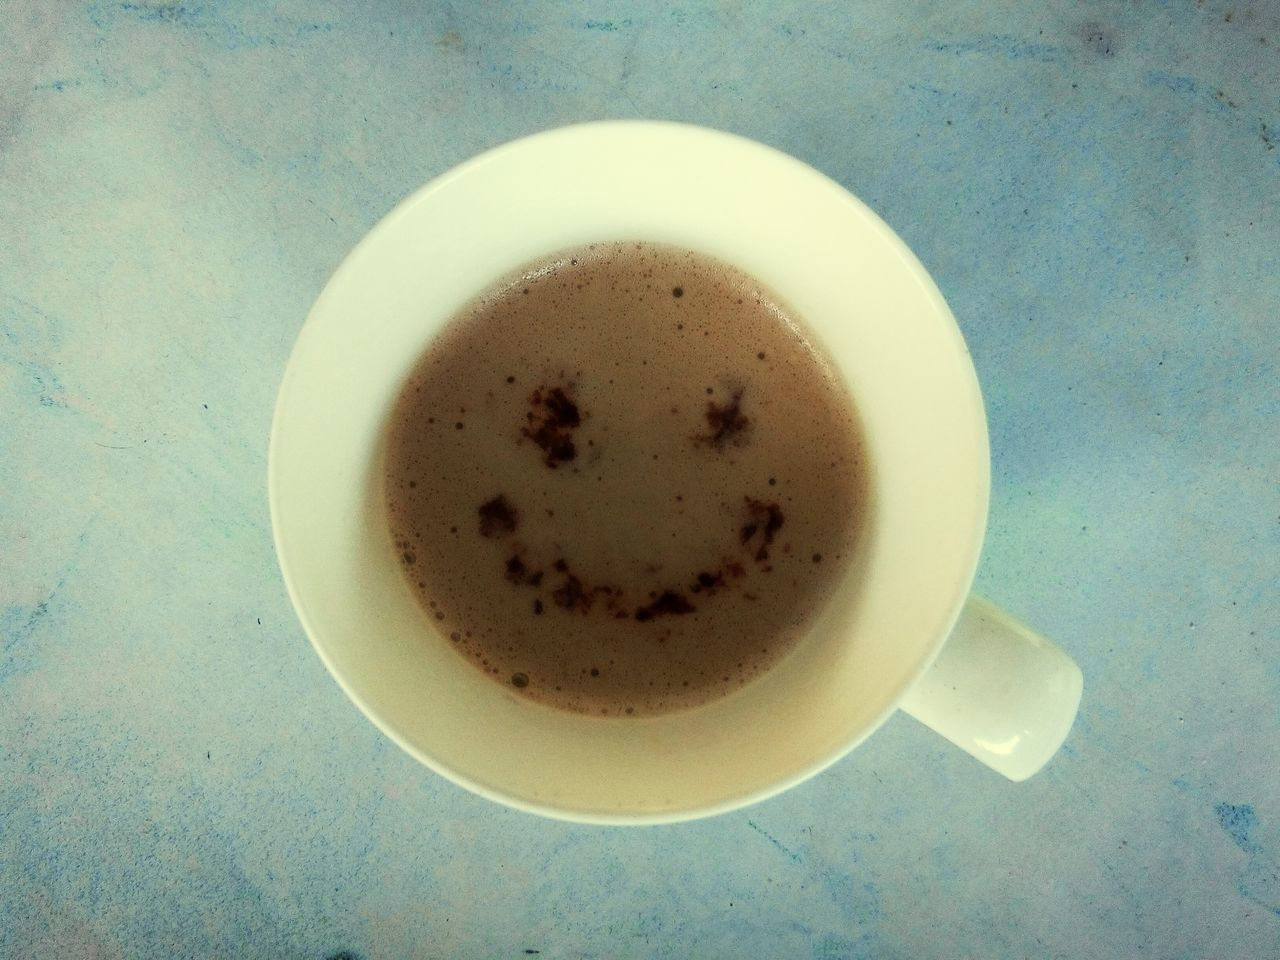 Directly Above Shot Of Coffee Cup With Smiley Face